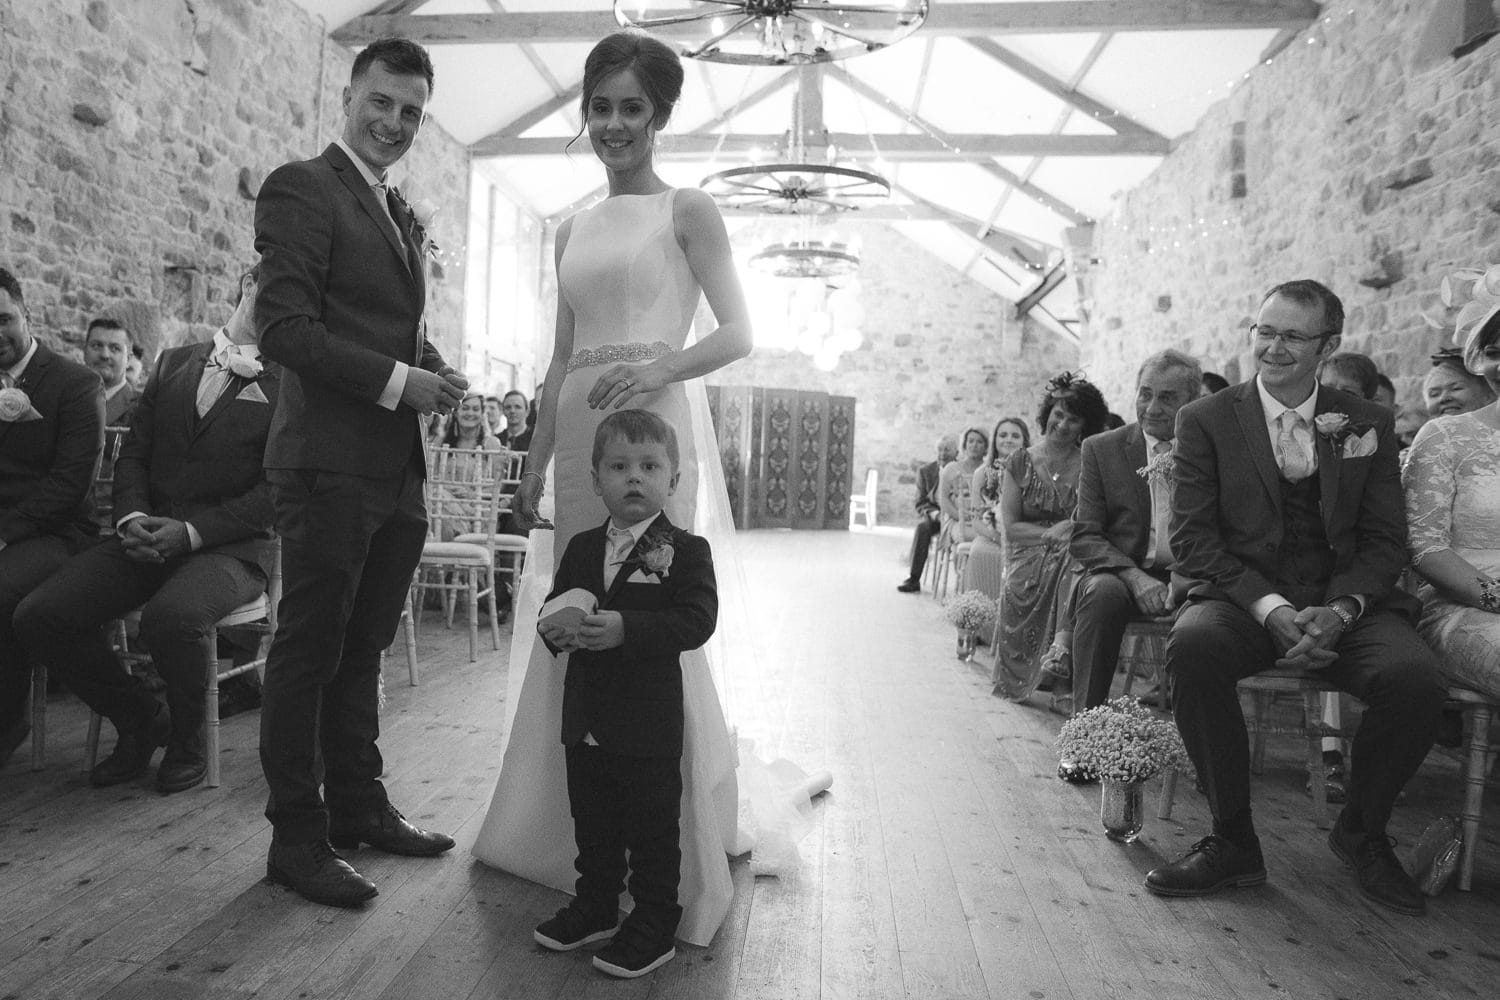 Beth and Ryan Portrait Shoot with Little Boy at the Wedding